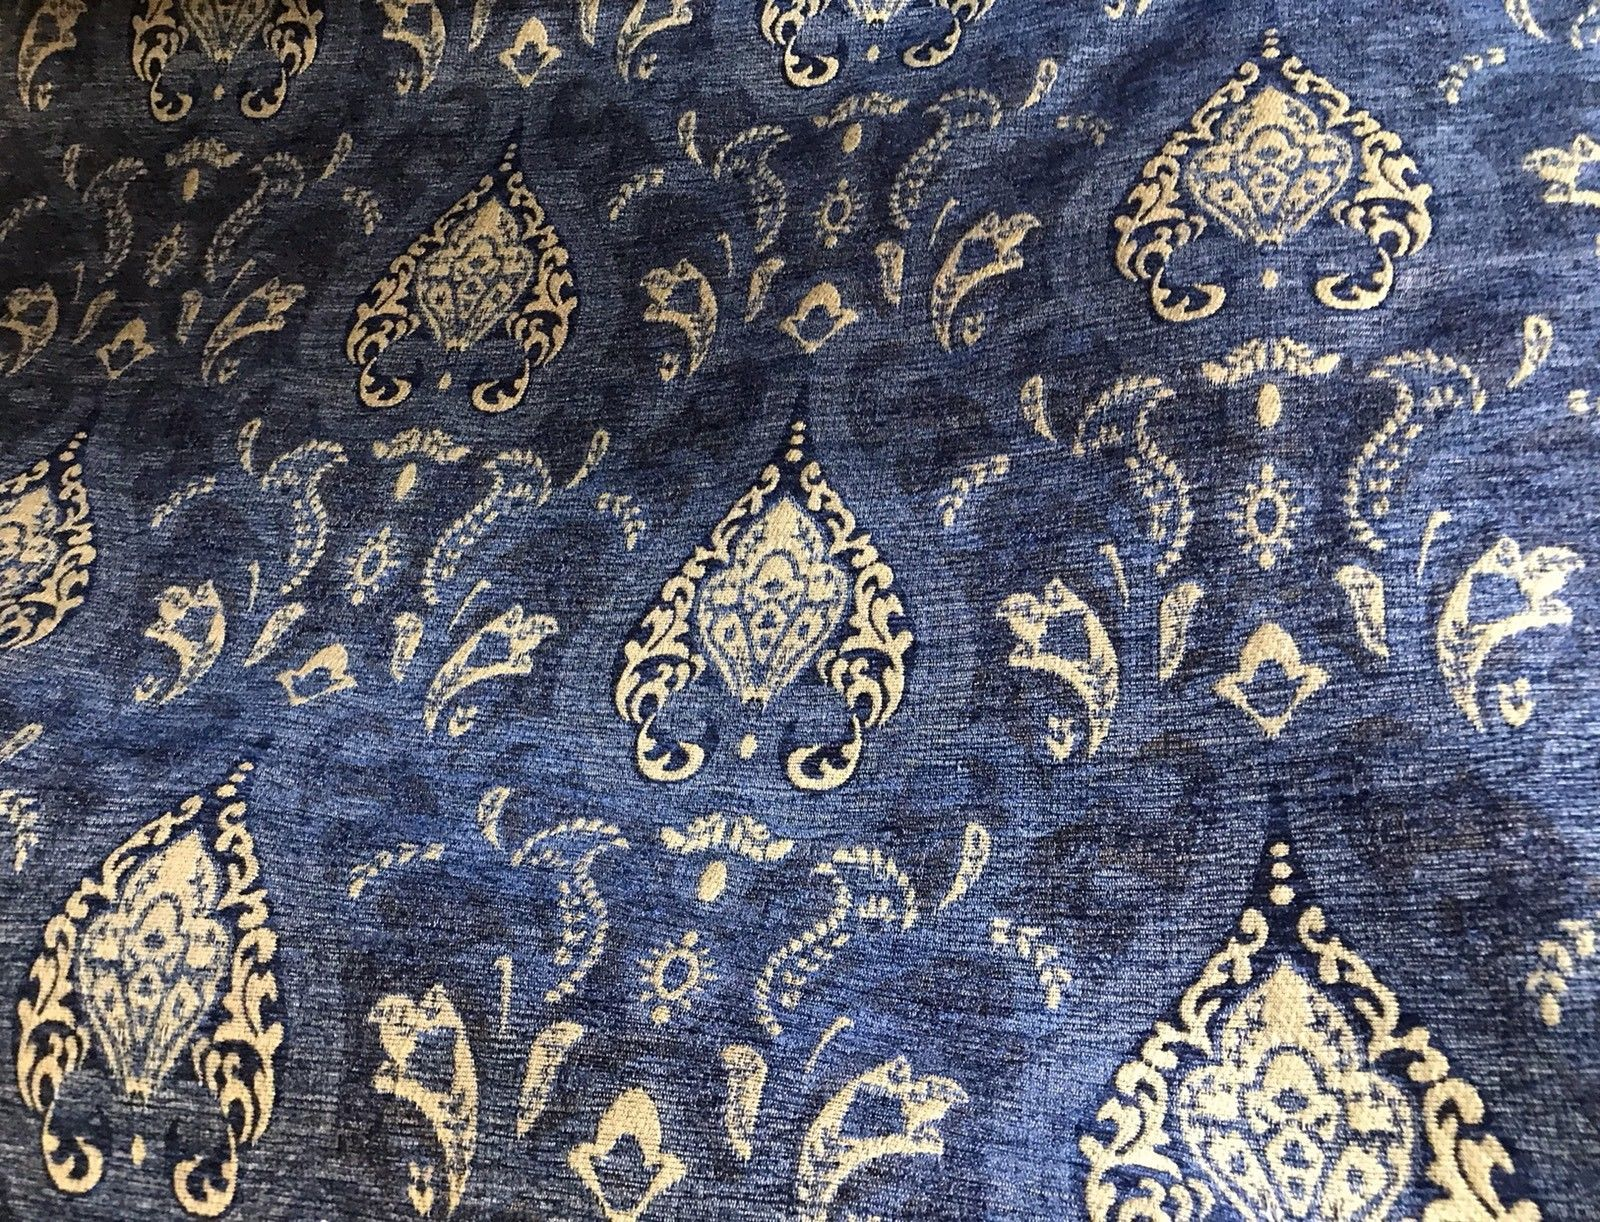 SWATCH Designer Upholstery Chenille Velvet Fabric - Blue Gold - Fancy Styles Fabric Boutique